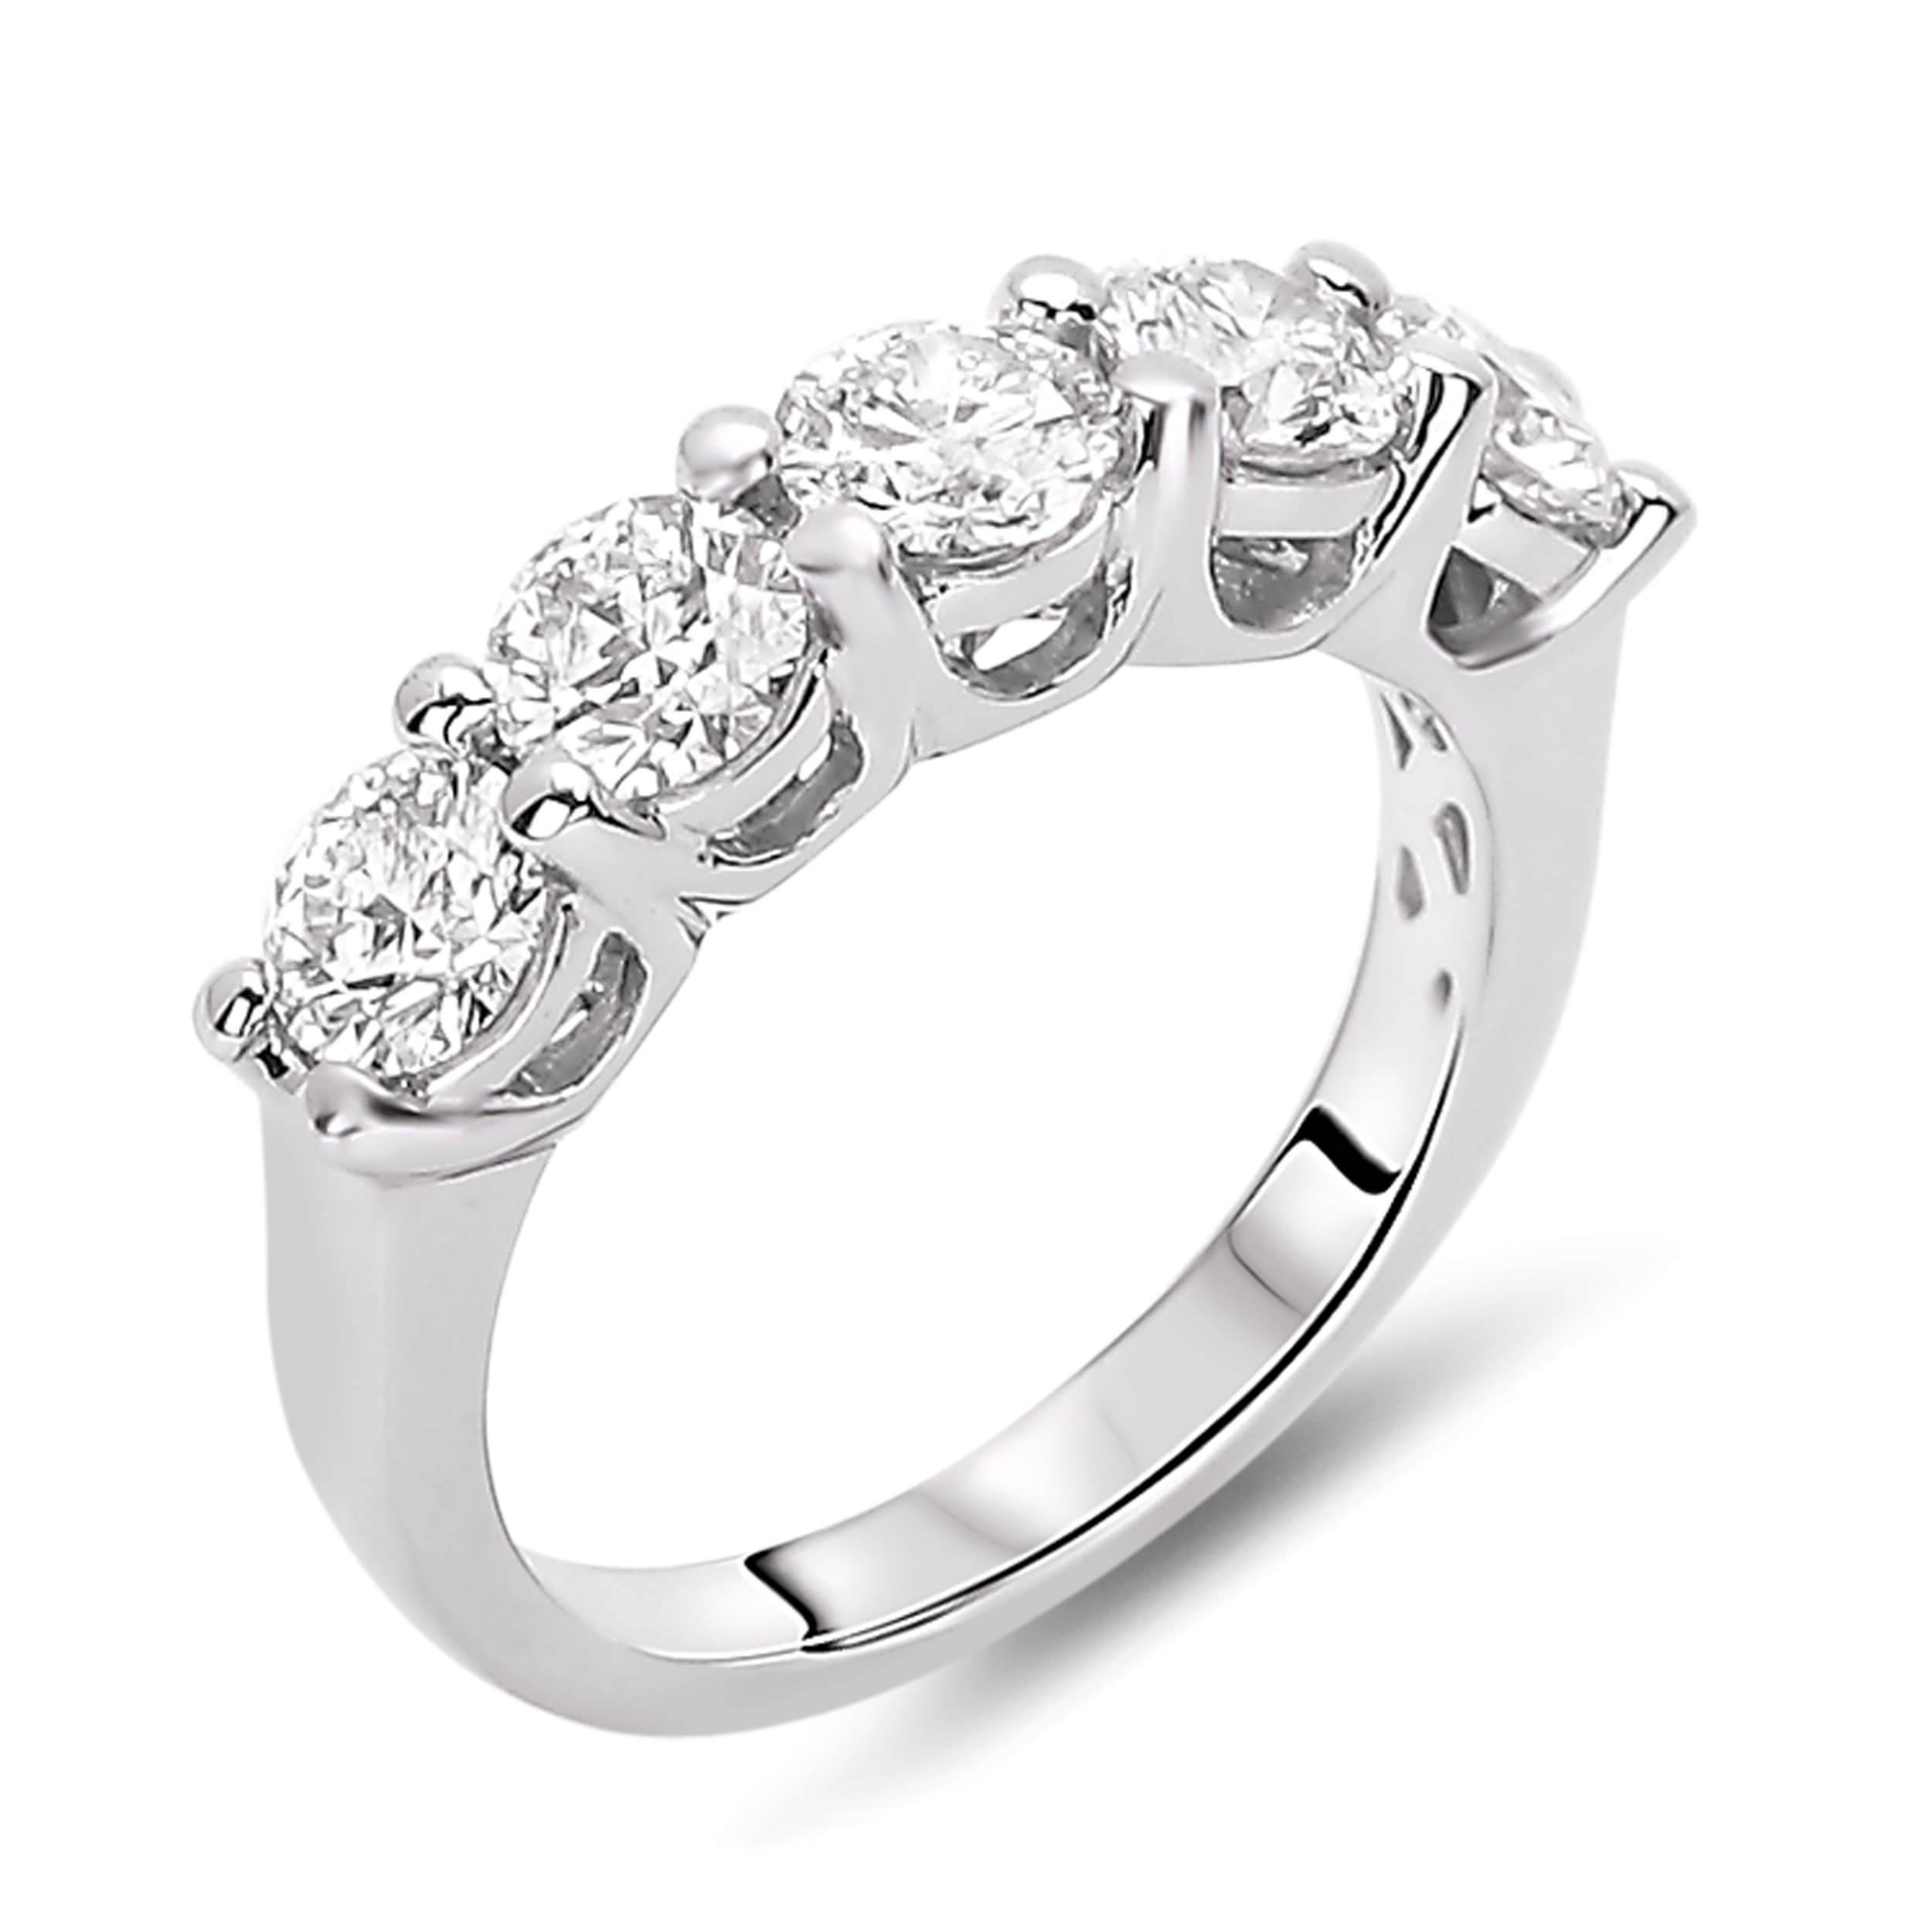 Wedding Rings : Three Stone Anniversary Ring Wear Alone 10 Year With Regard To Rochester Engagement Rings (View 6 of 15)